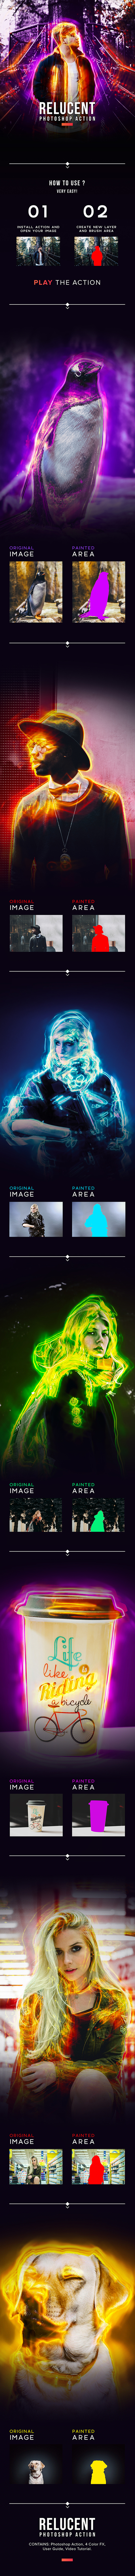 Relucent - Photoshop Action - Photo Effects Actions